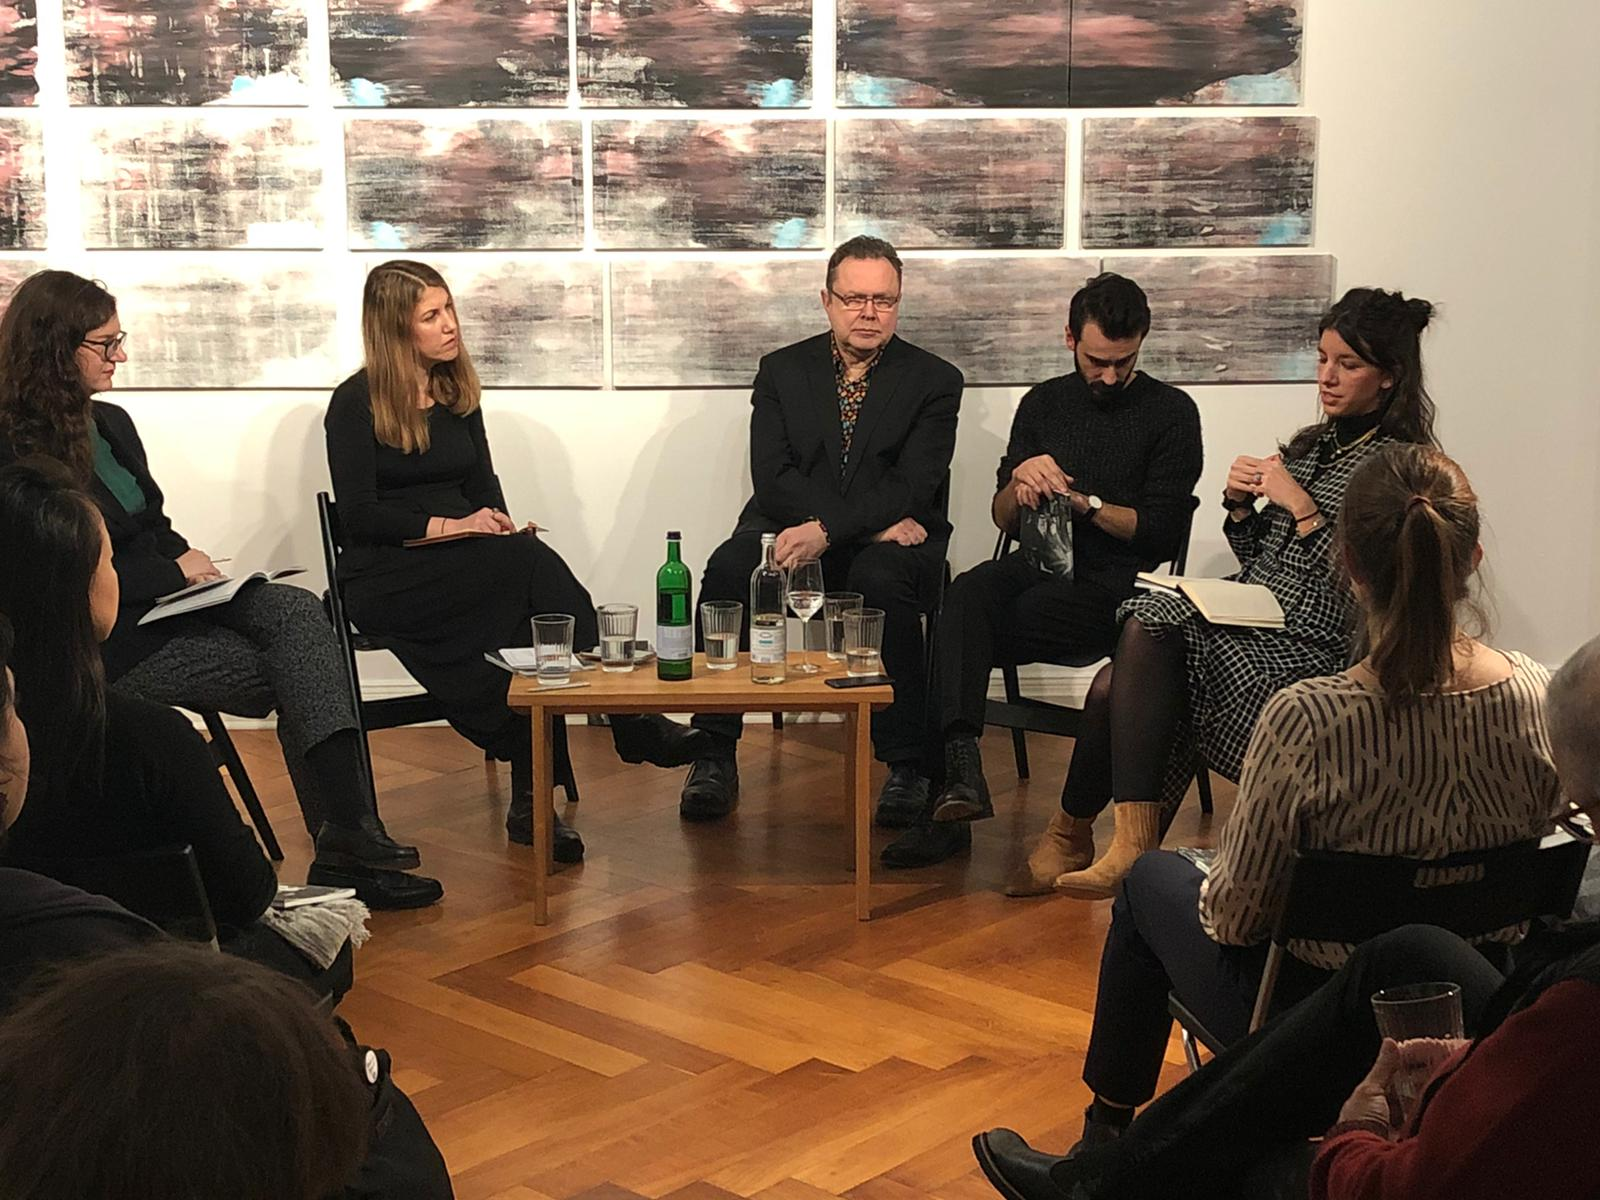 20/02/2020 - Alpin Arda Bağcık's catalog launch and conversation, Zilberman-Berlin